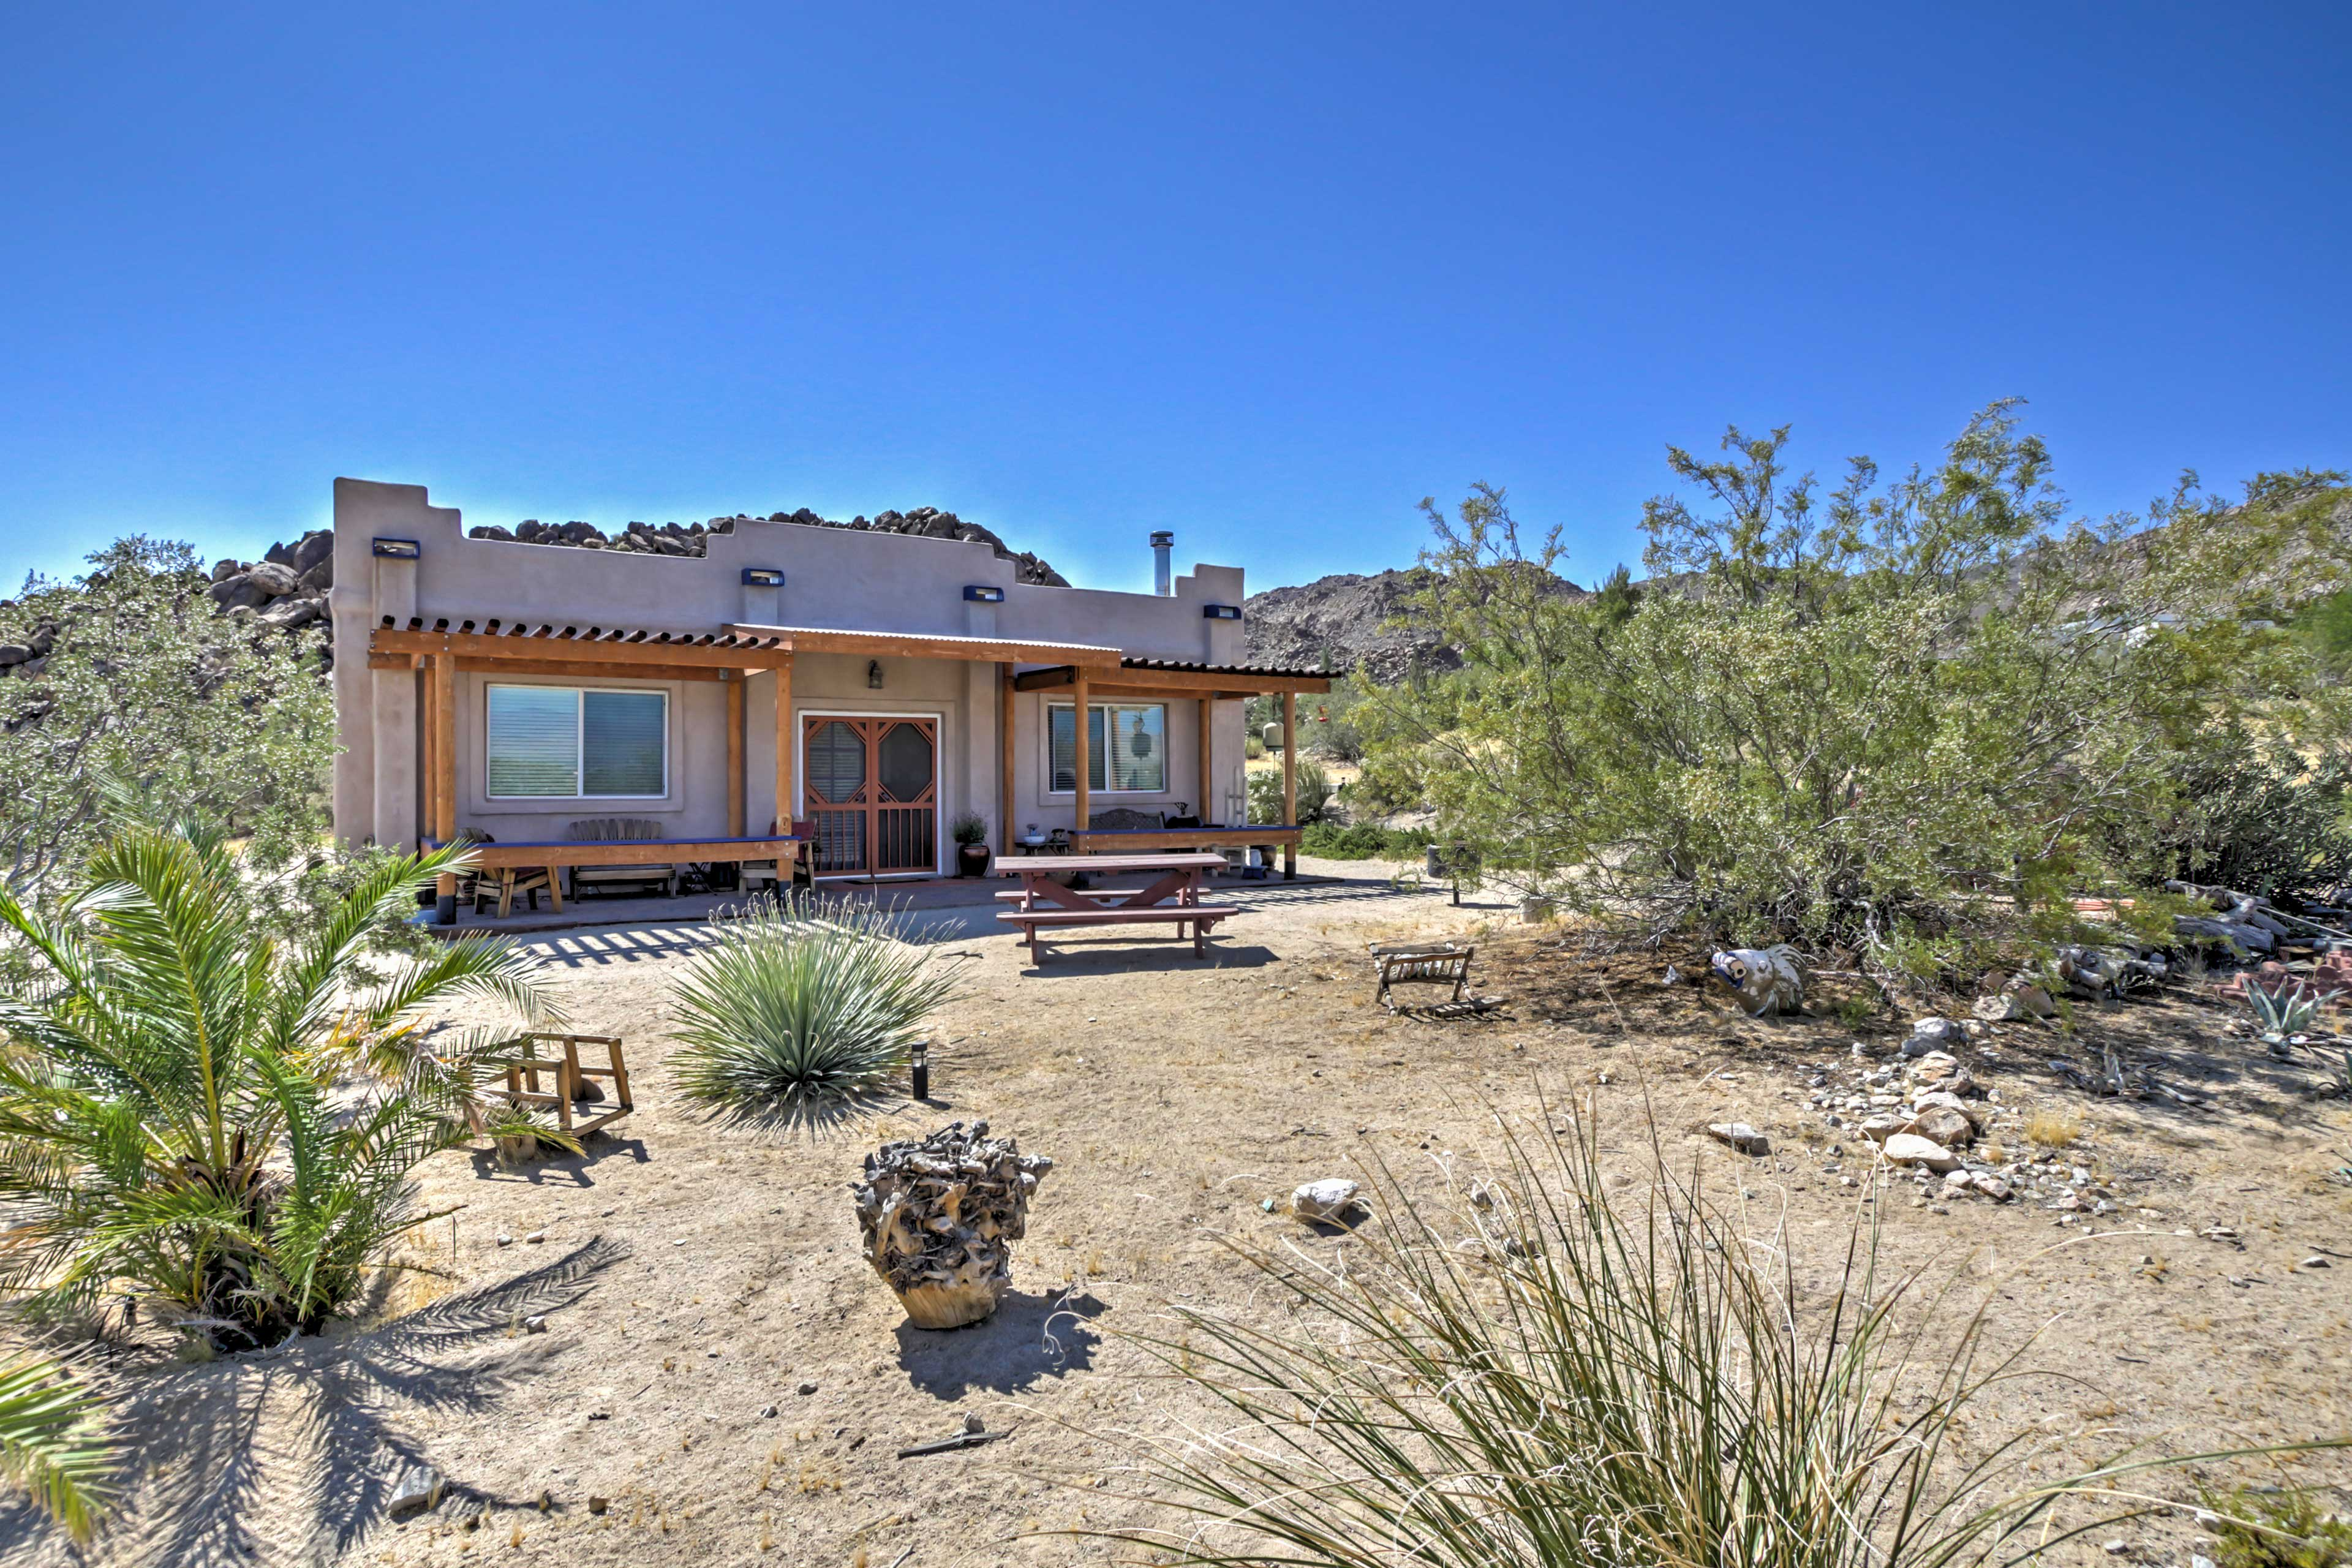 Experience the sprawling desert from this house in Joshua Tree, California!